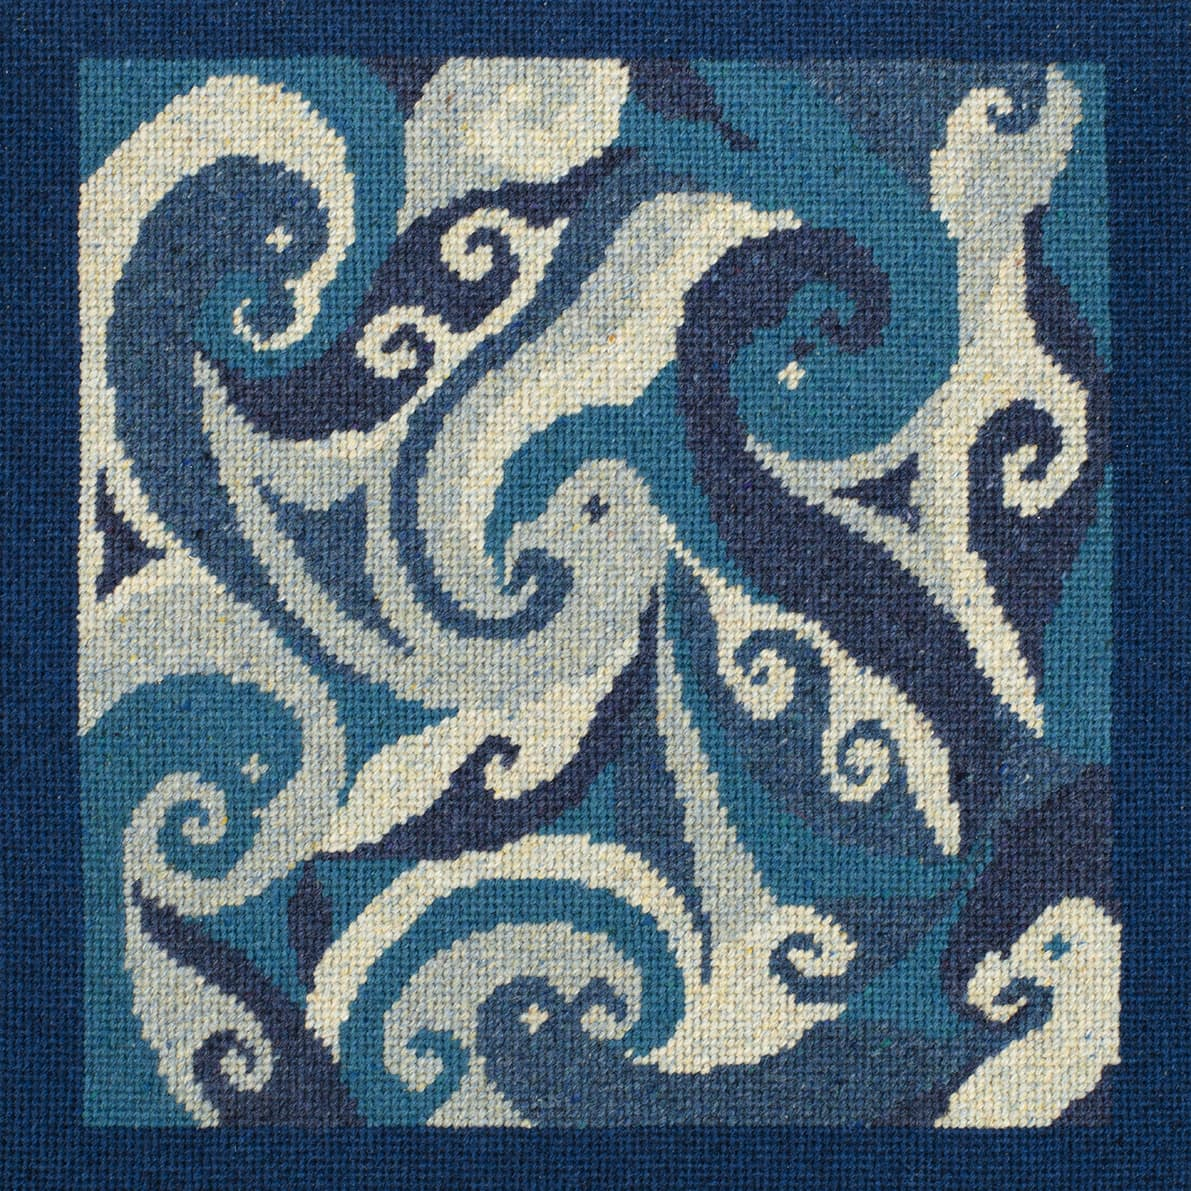 Needlepoint design by Alice Starmore worked in Hebridean 2 Ply hand-knitting yarn